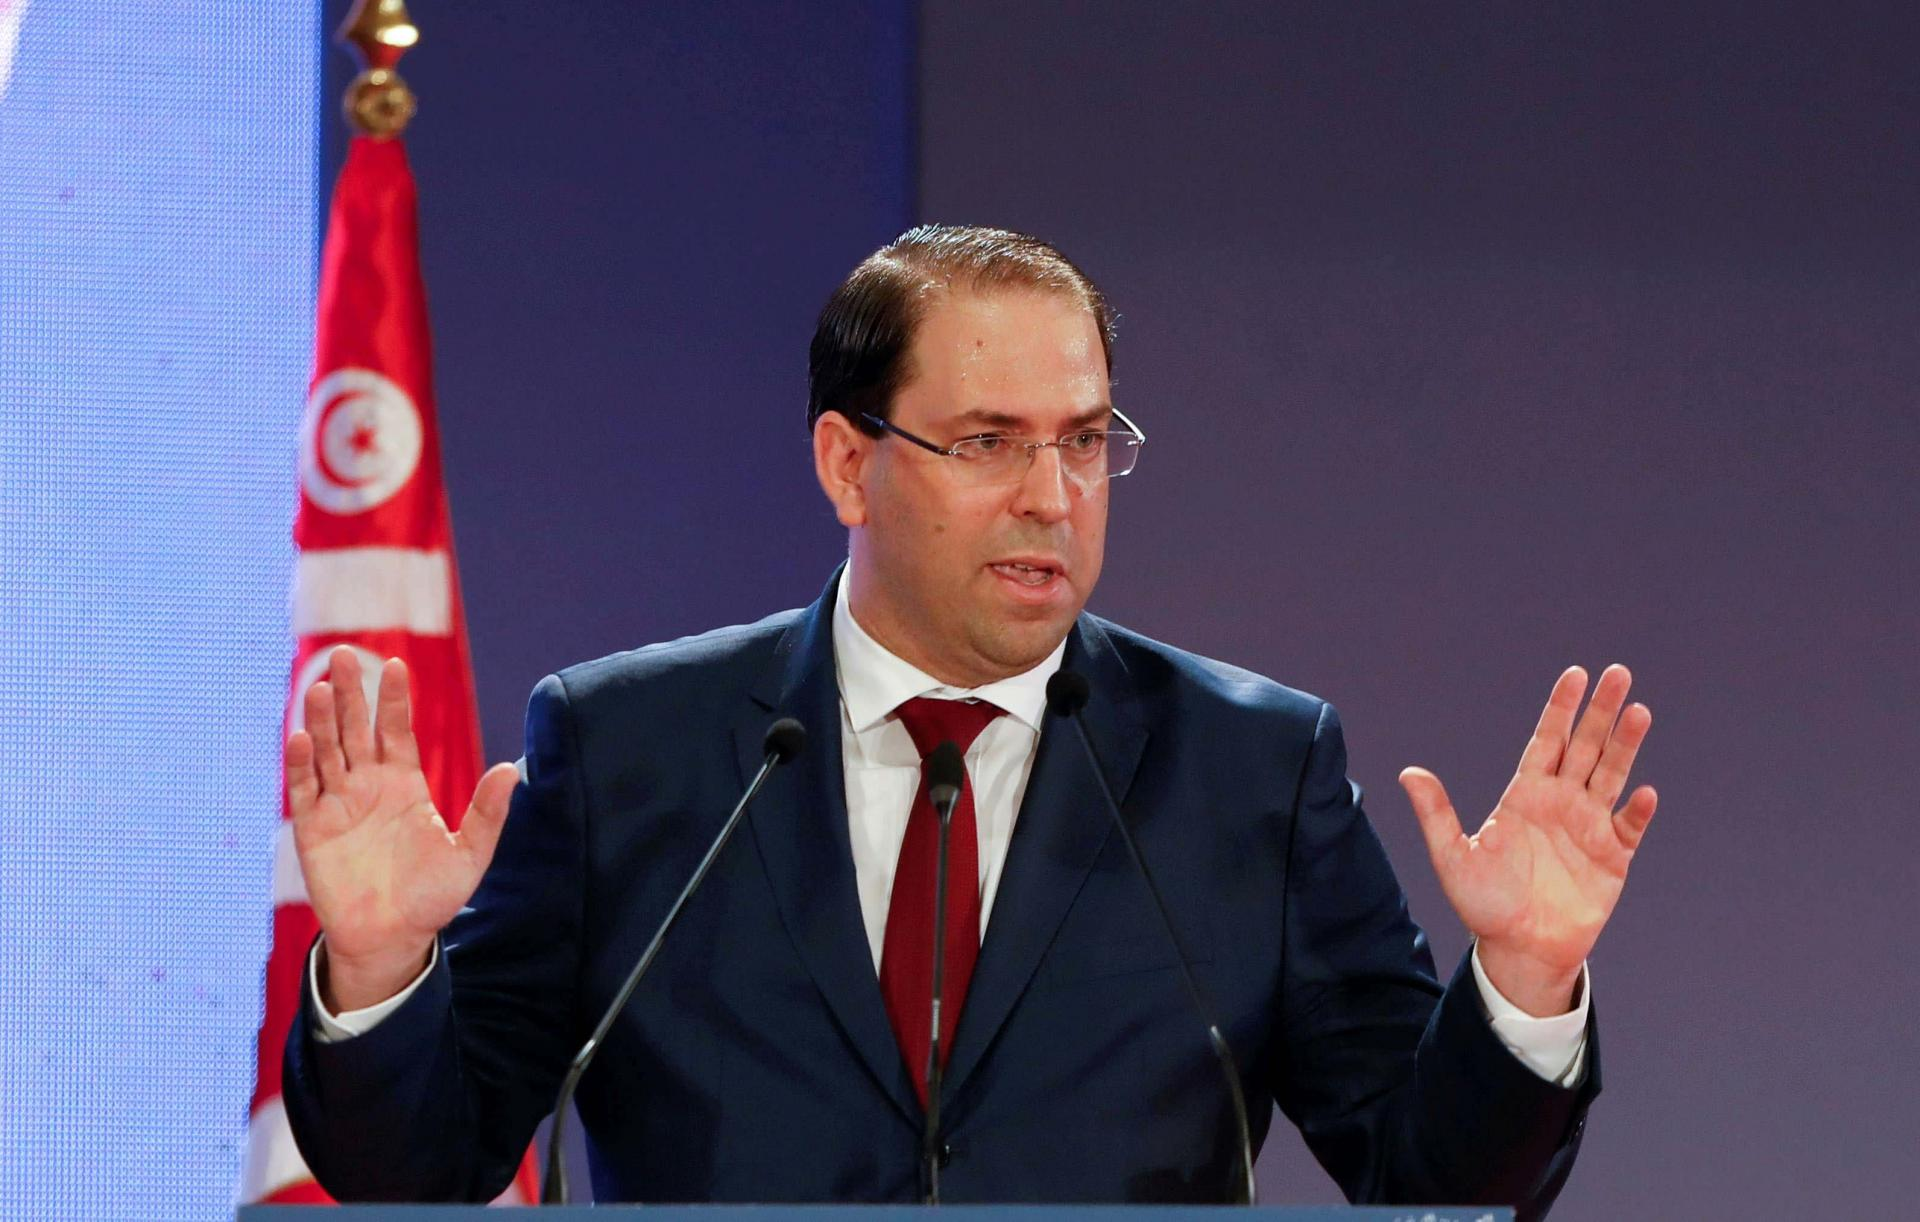 Chahed has been in the hot seat for months due to his tussle with Hafedh Caid Essebsi, who is reported to have presidential ambitions